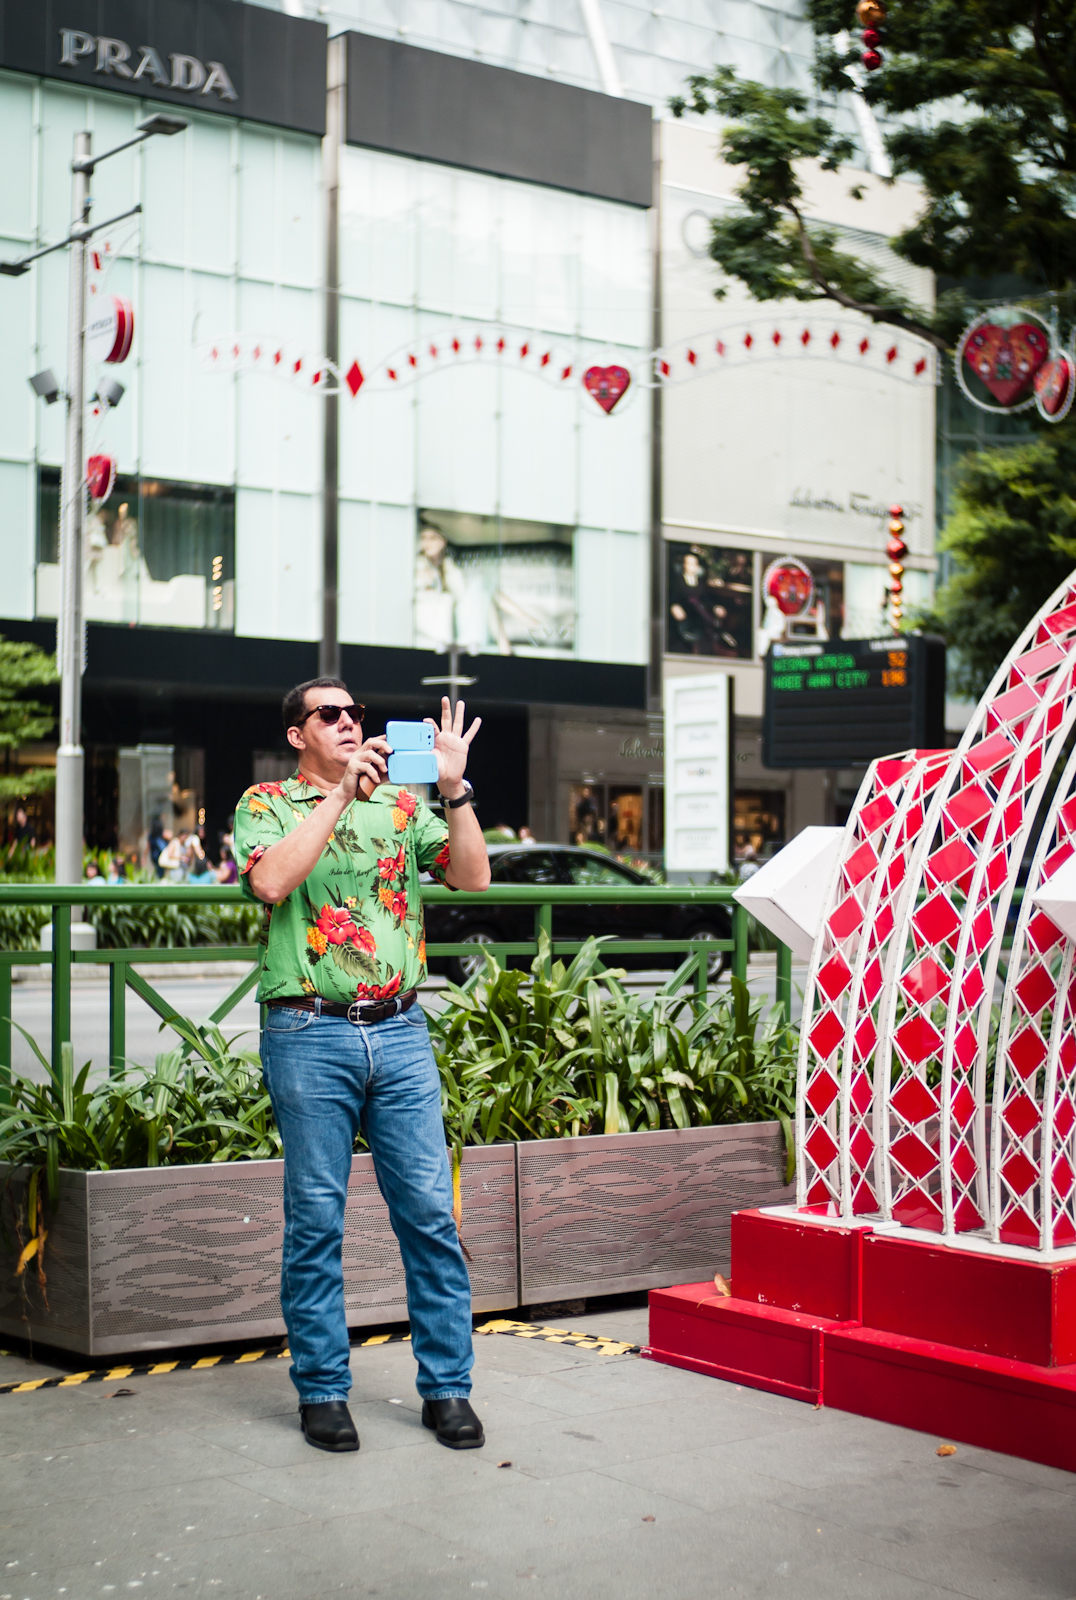 A man in bright clothing taking photos with his smartphone camera